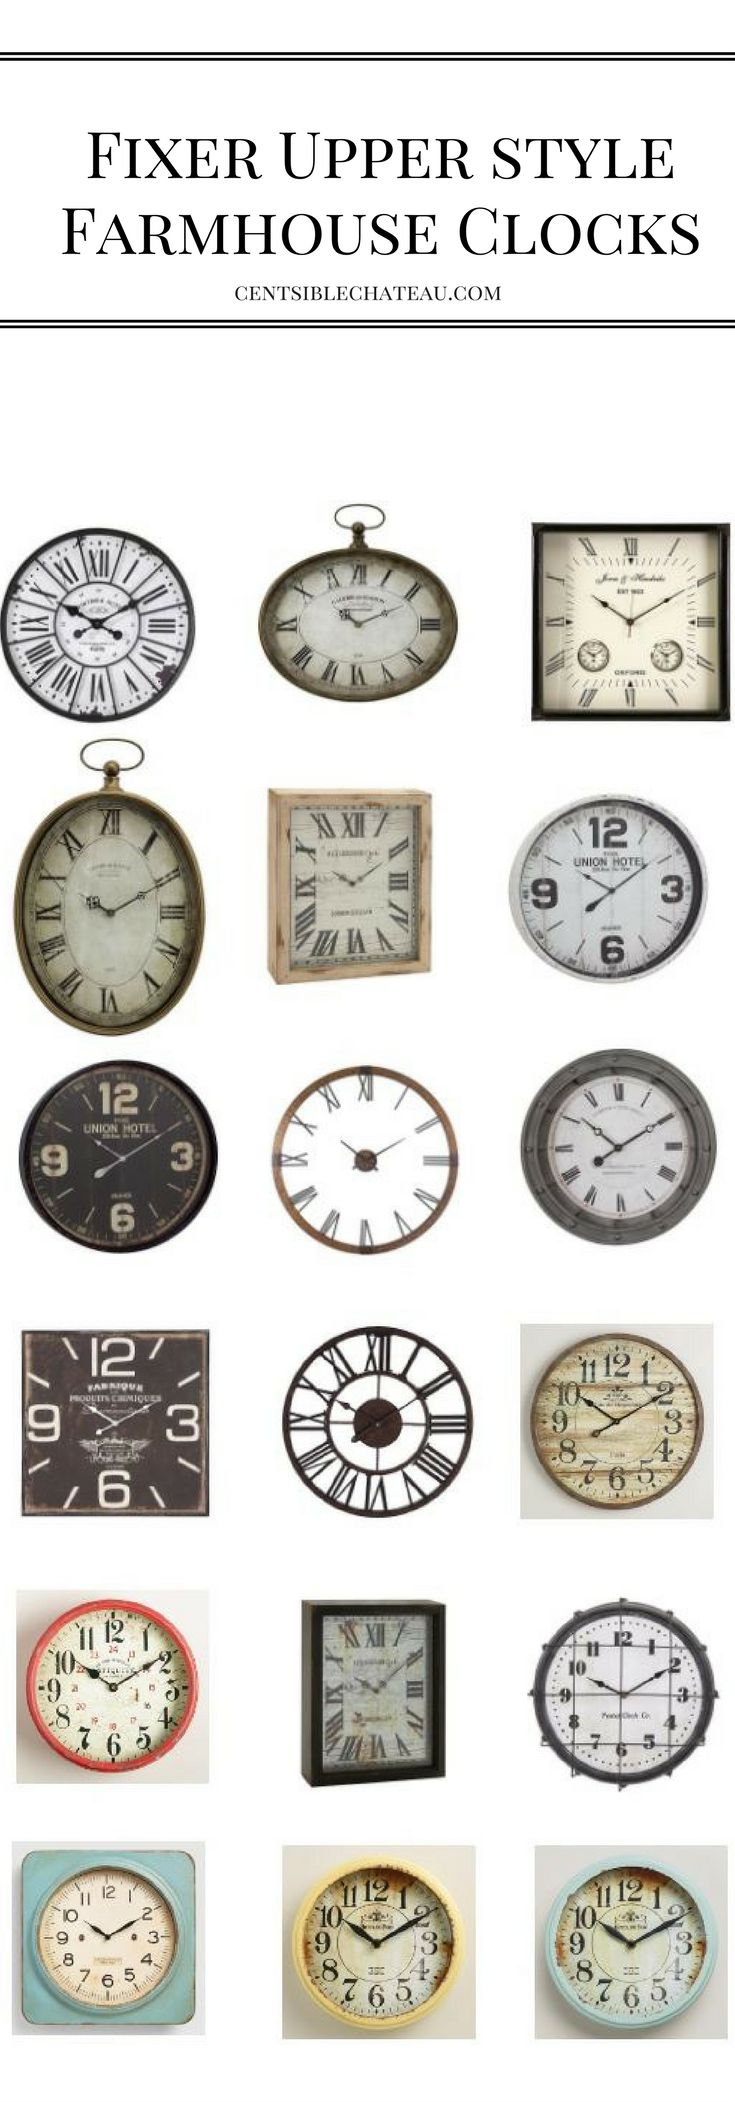 Fixer Upper Style|Farmhouse Clocks| Fixer Upper Decor| Clocks|